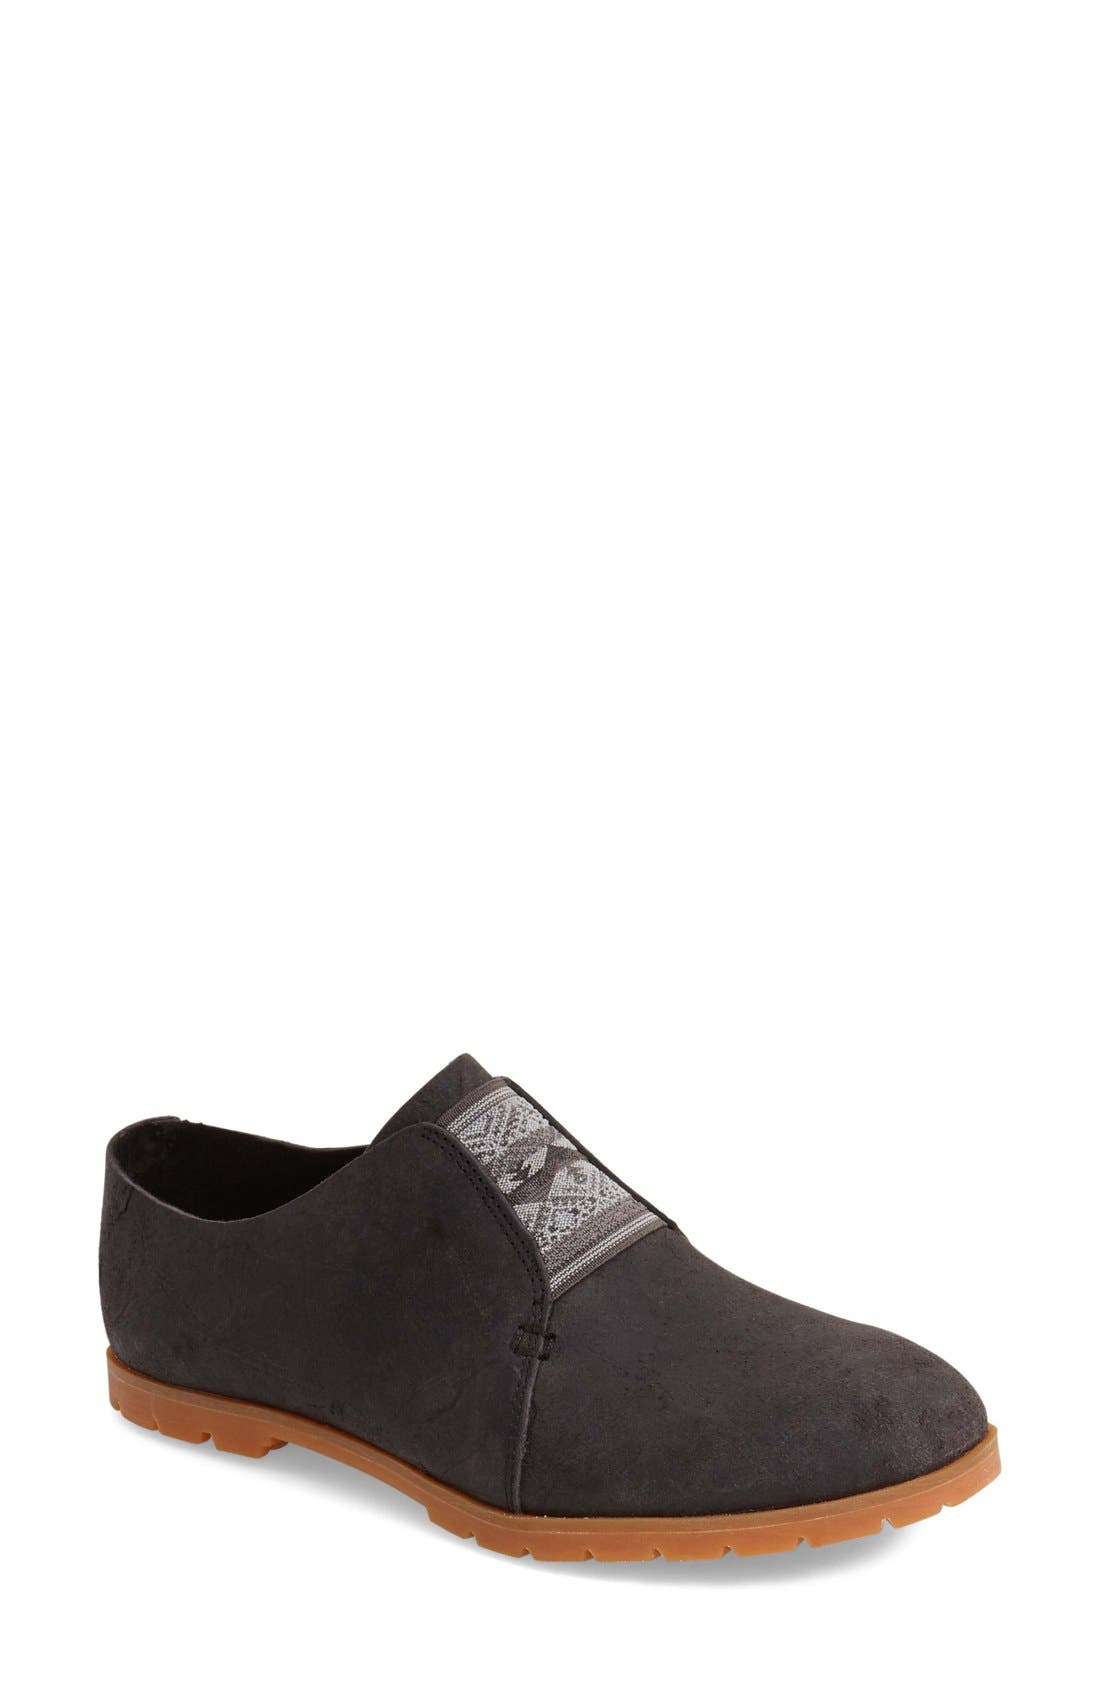 Woolrich 'Left Lane' Flat (Women)